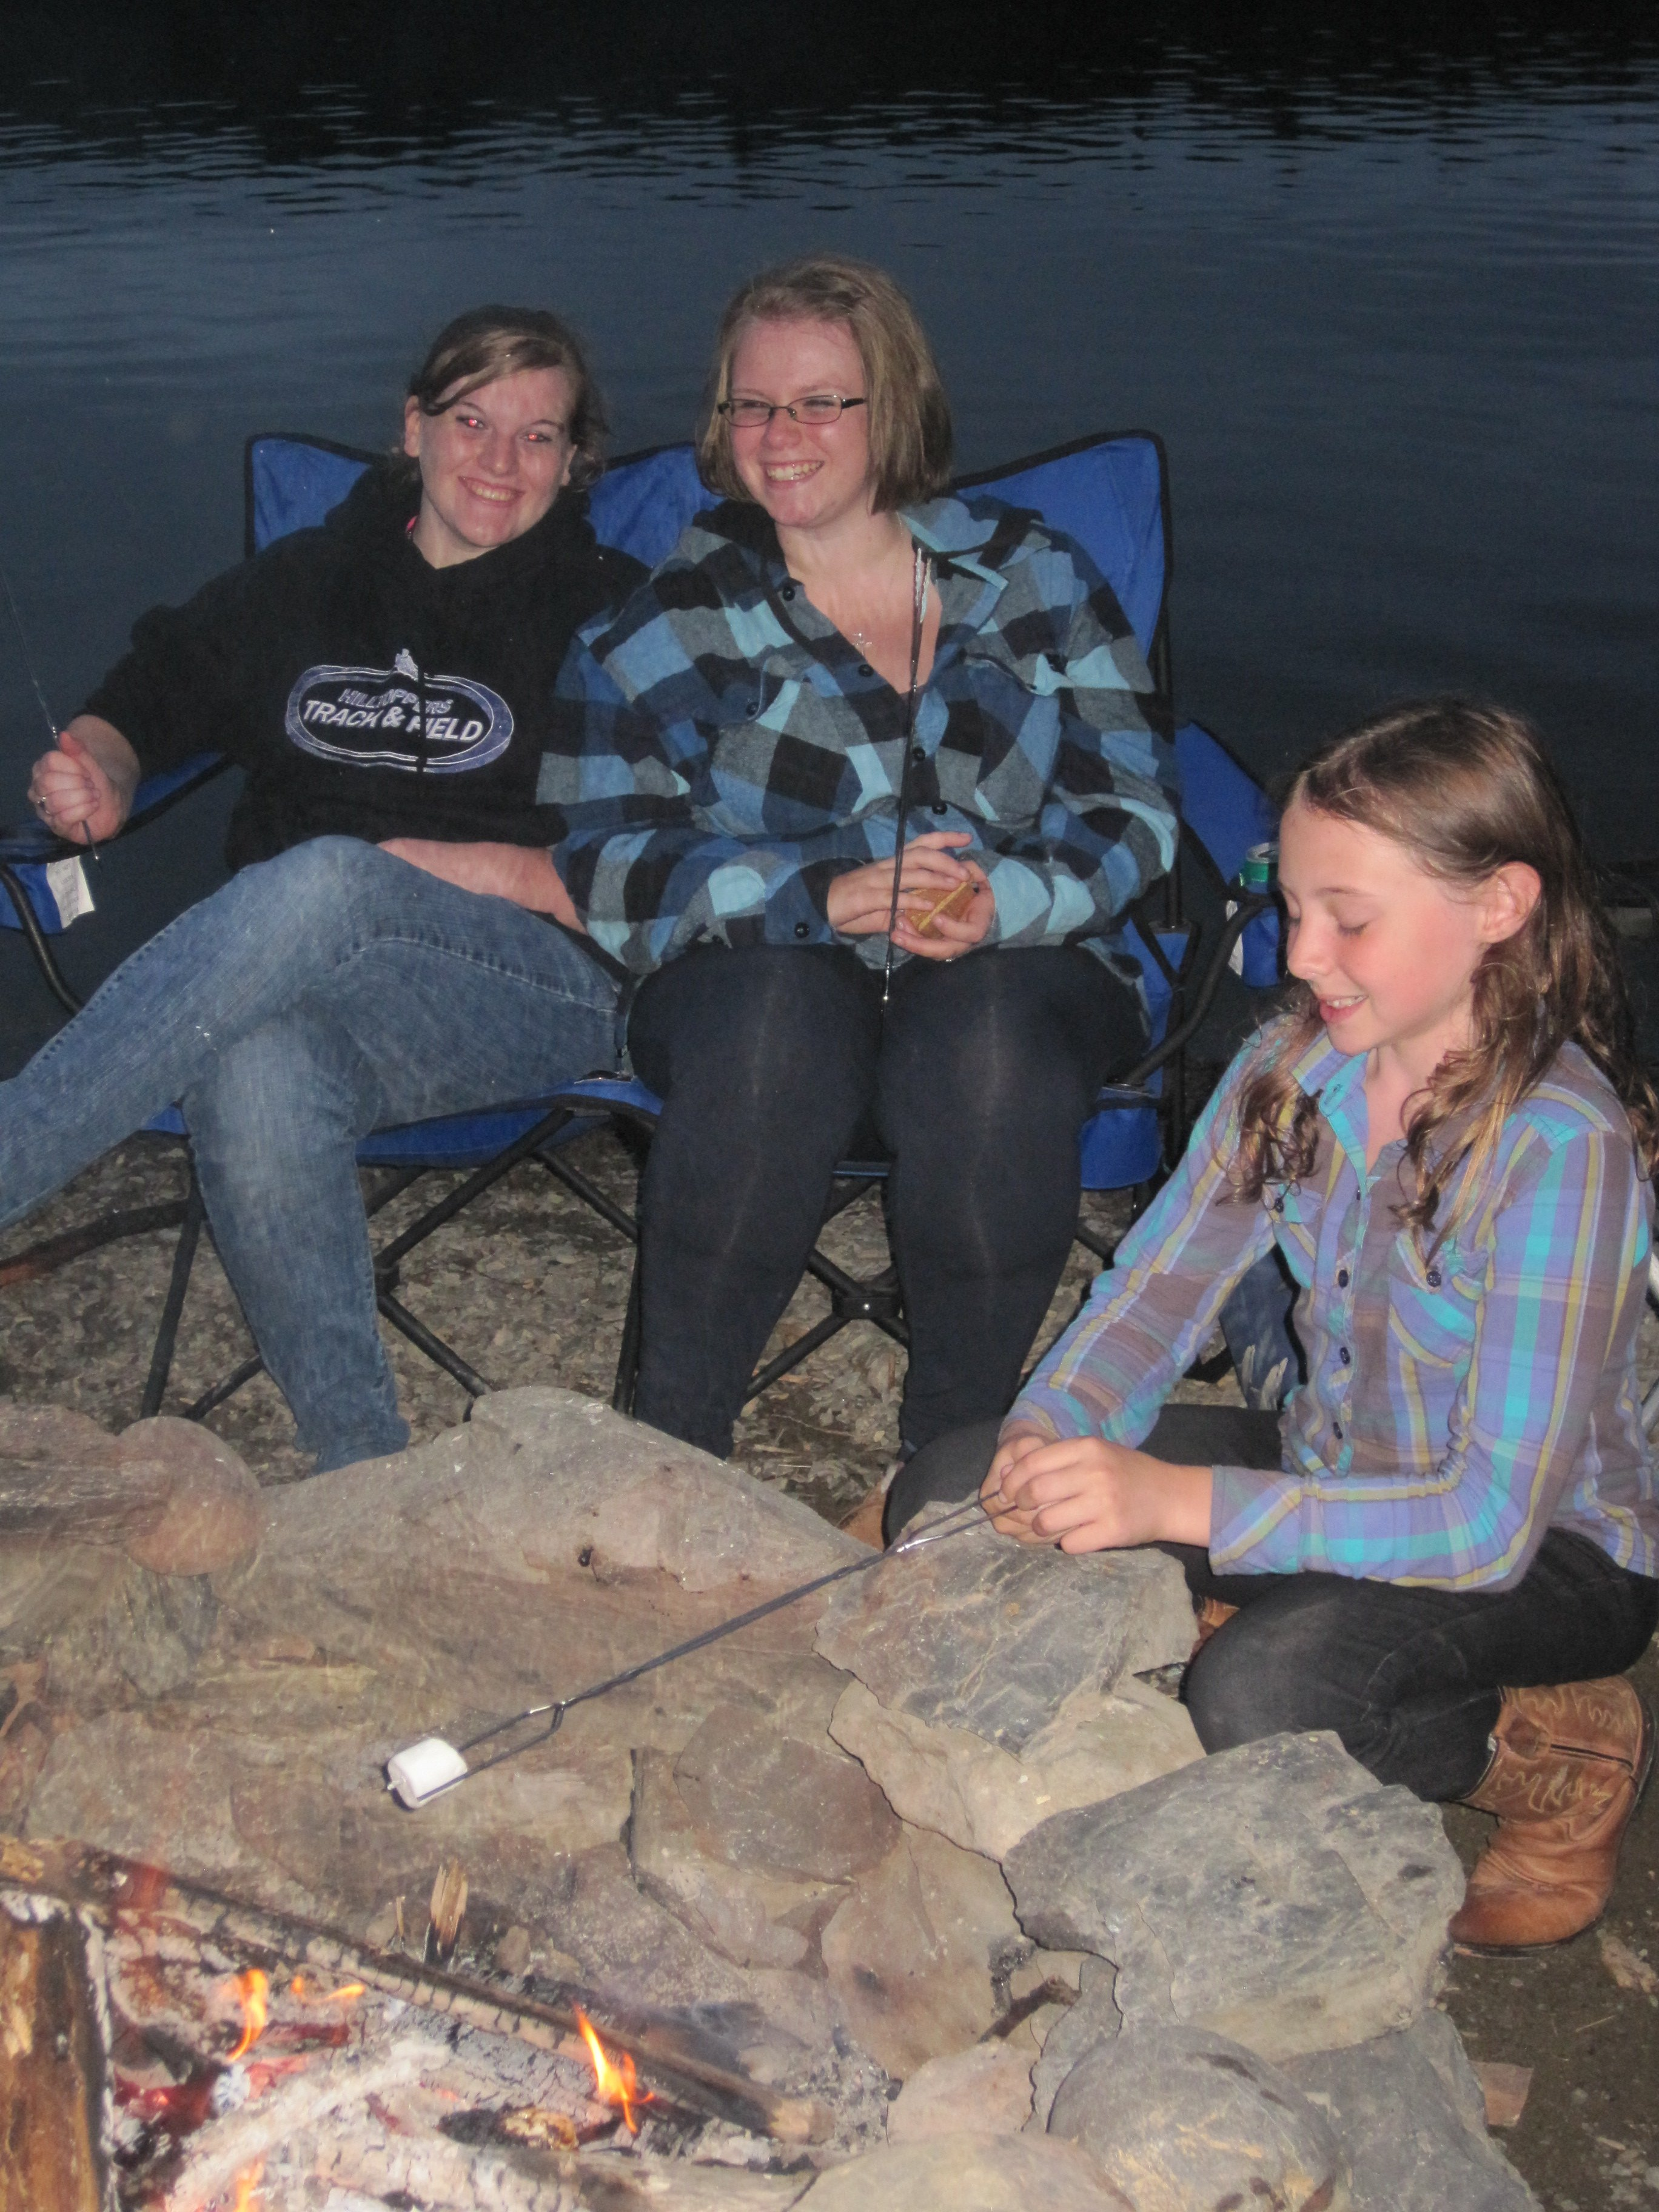 New friendships forged while toasting marshmallows at the camp fire.